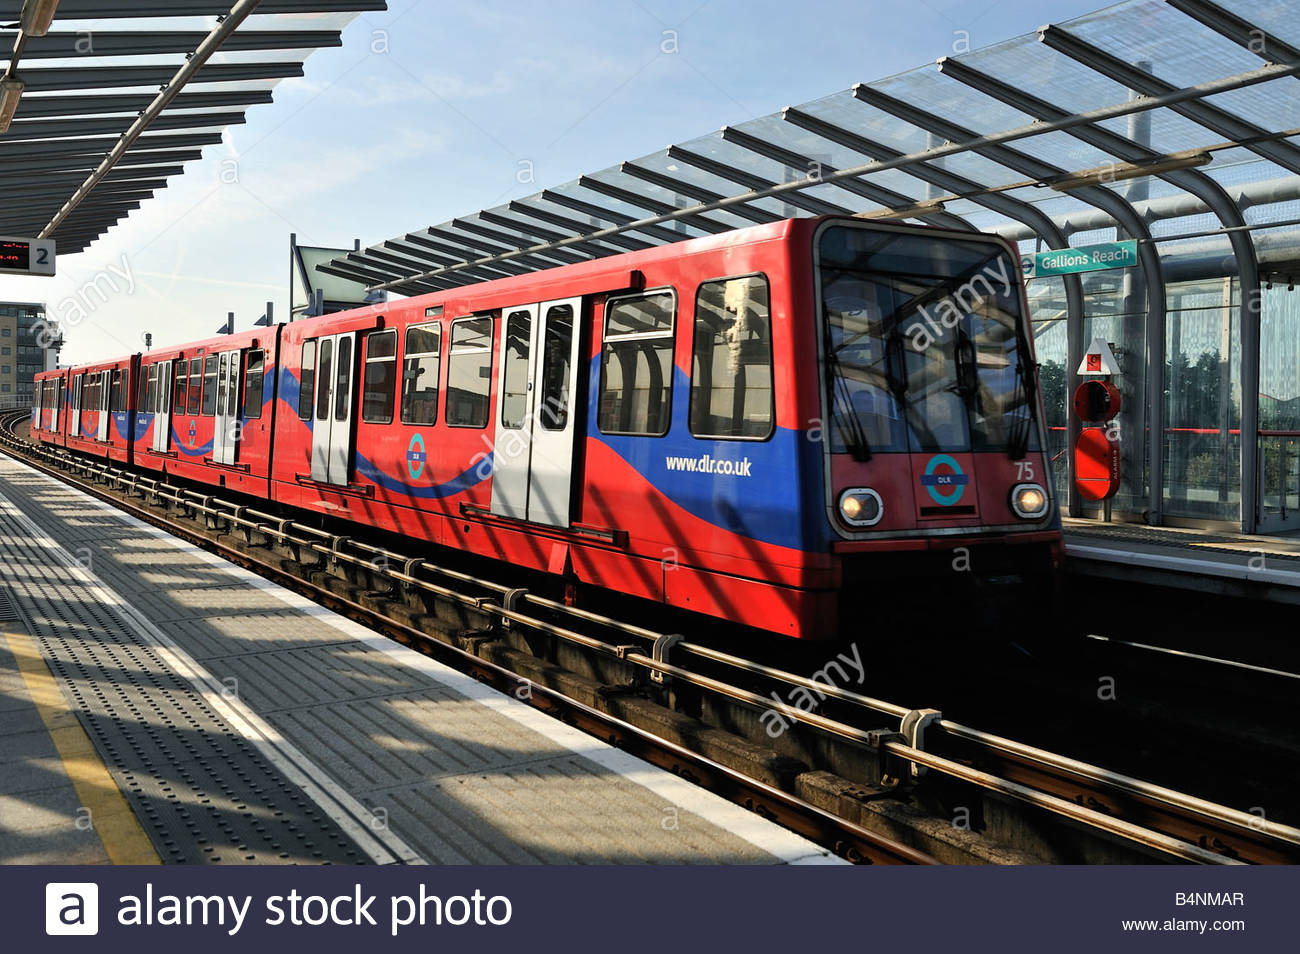 The Gallions Reach DLR station at Beckton East London - Stock Image